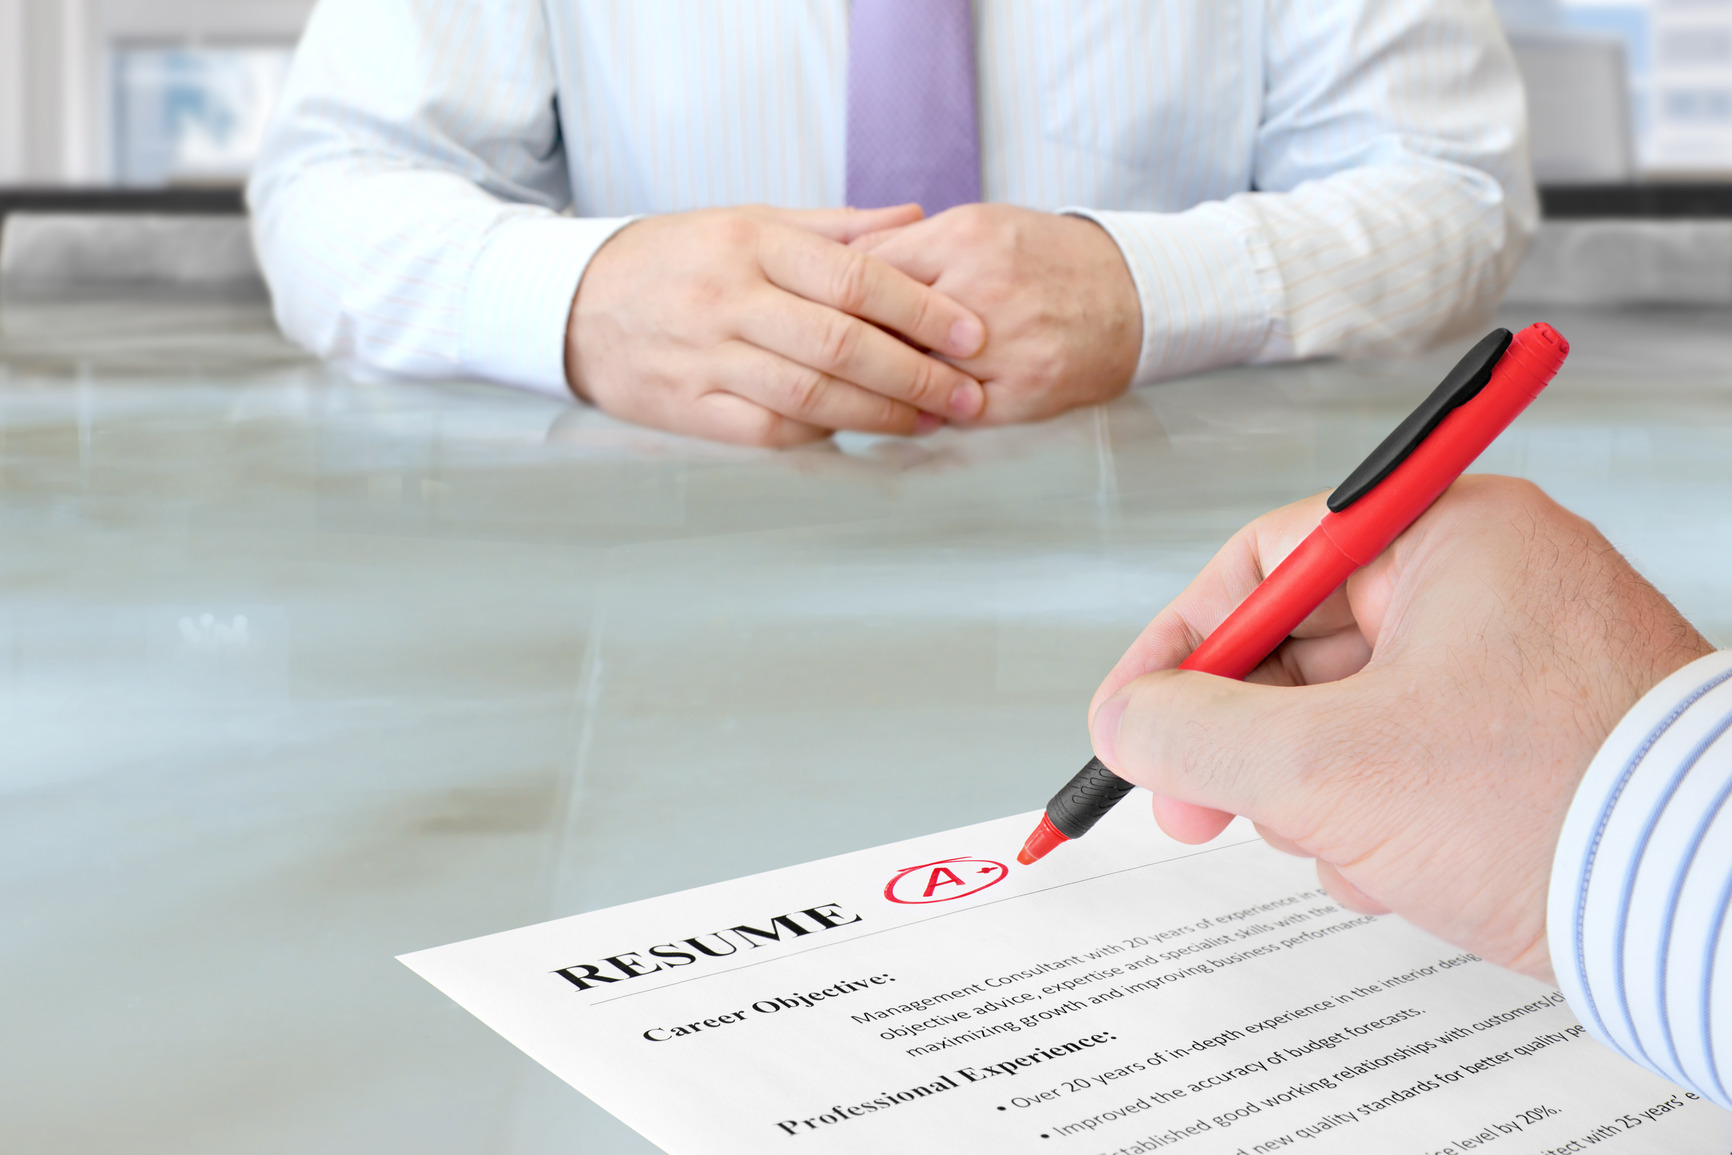 cv writing services in cape town custom professional written we provide a professional cv writing service - Writing Resume